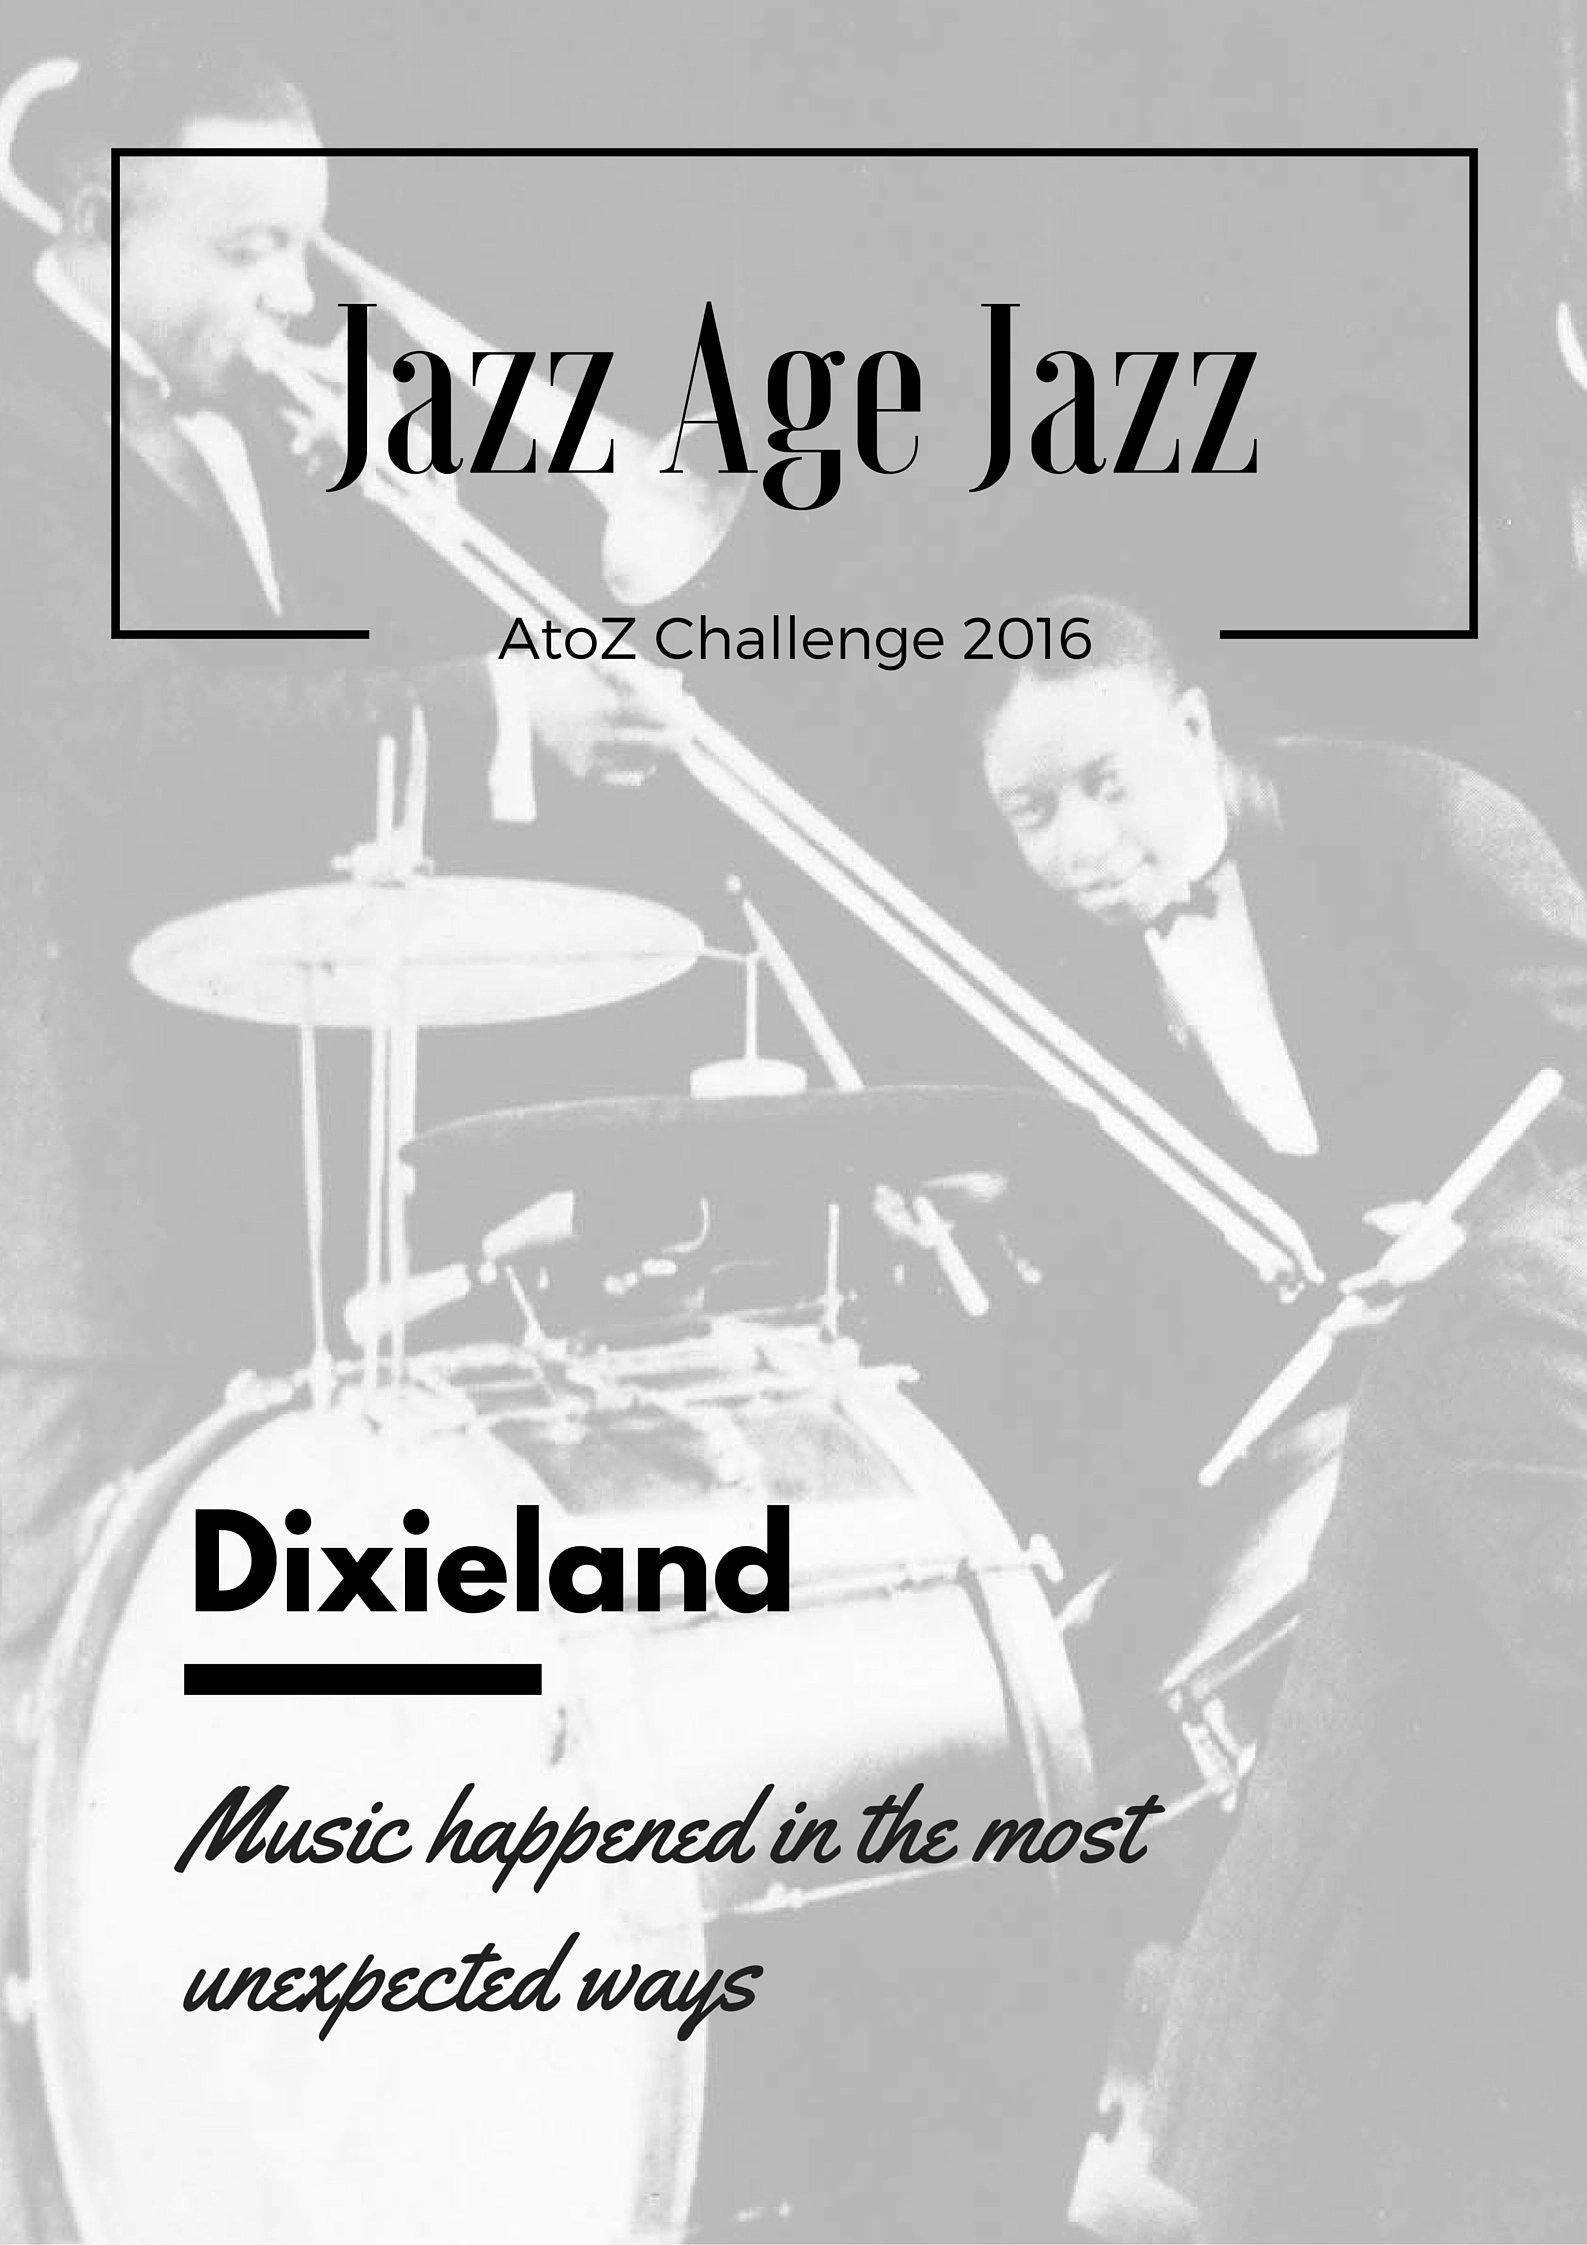 Jazz Age Jazz - Dixieland: music happened in the most unexpected ways